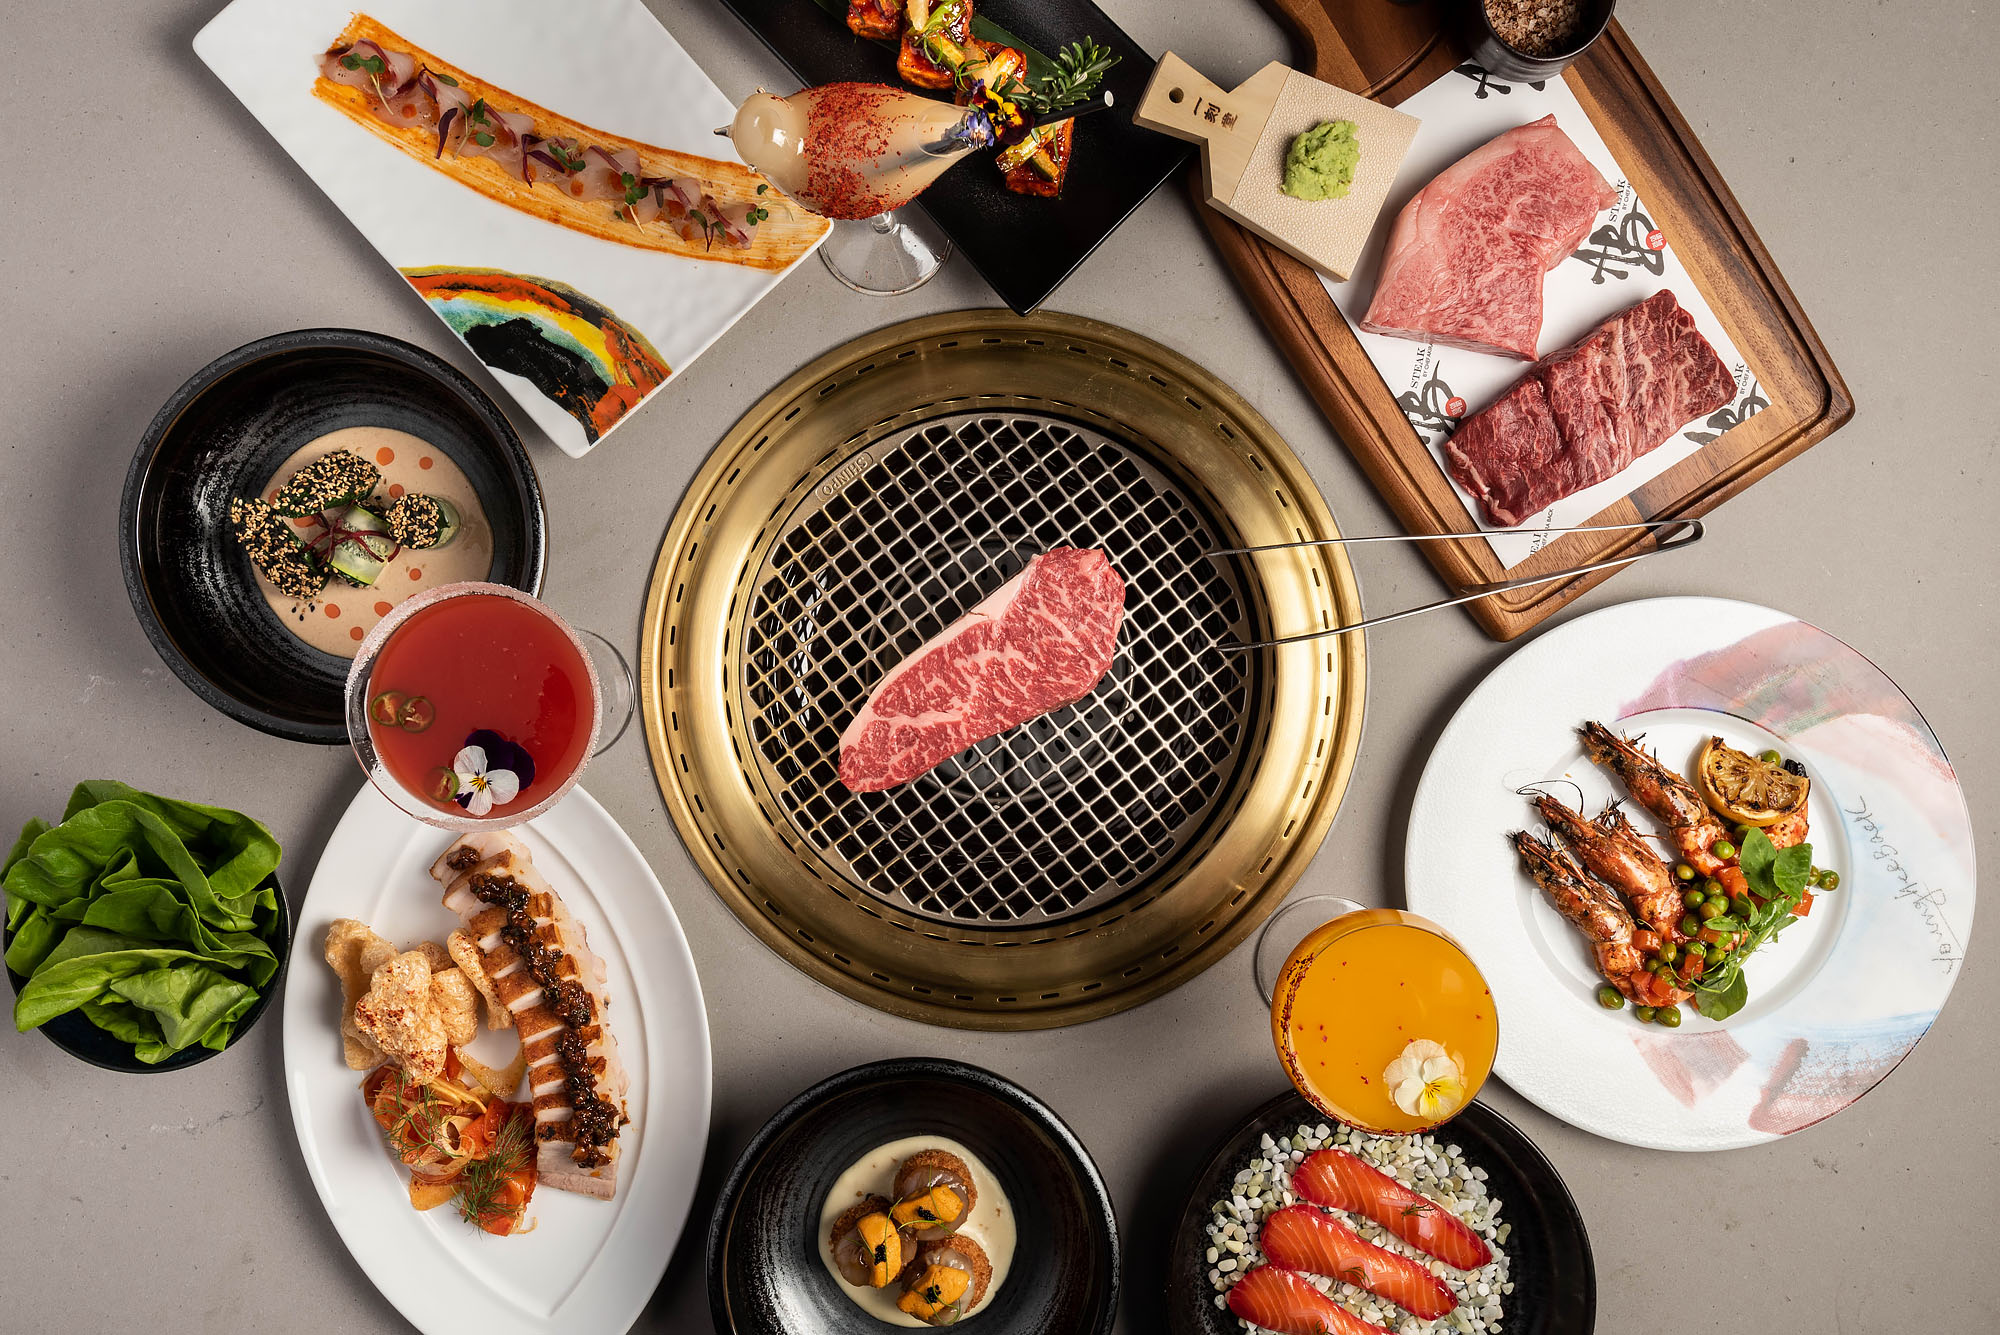 Steak and small plates at ABSteak, Los Angeles around a tabletop grill.